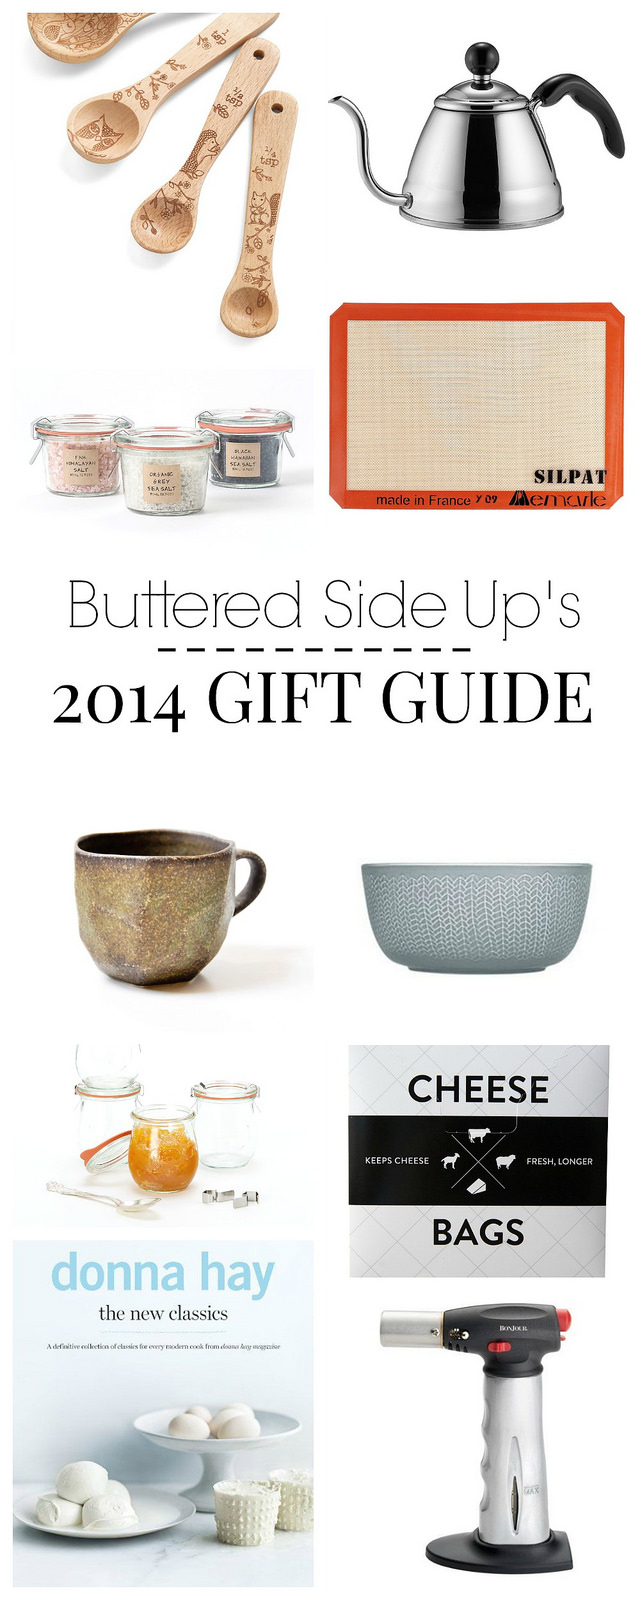 2014 Gift Guide